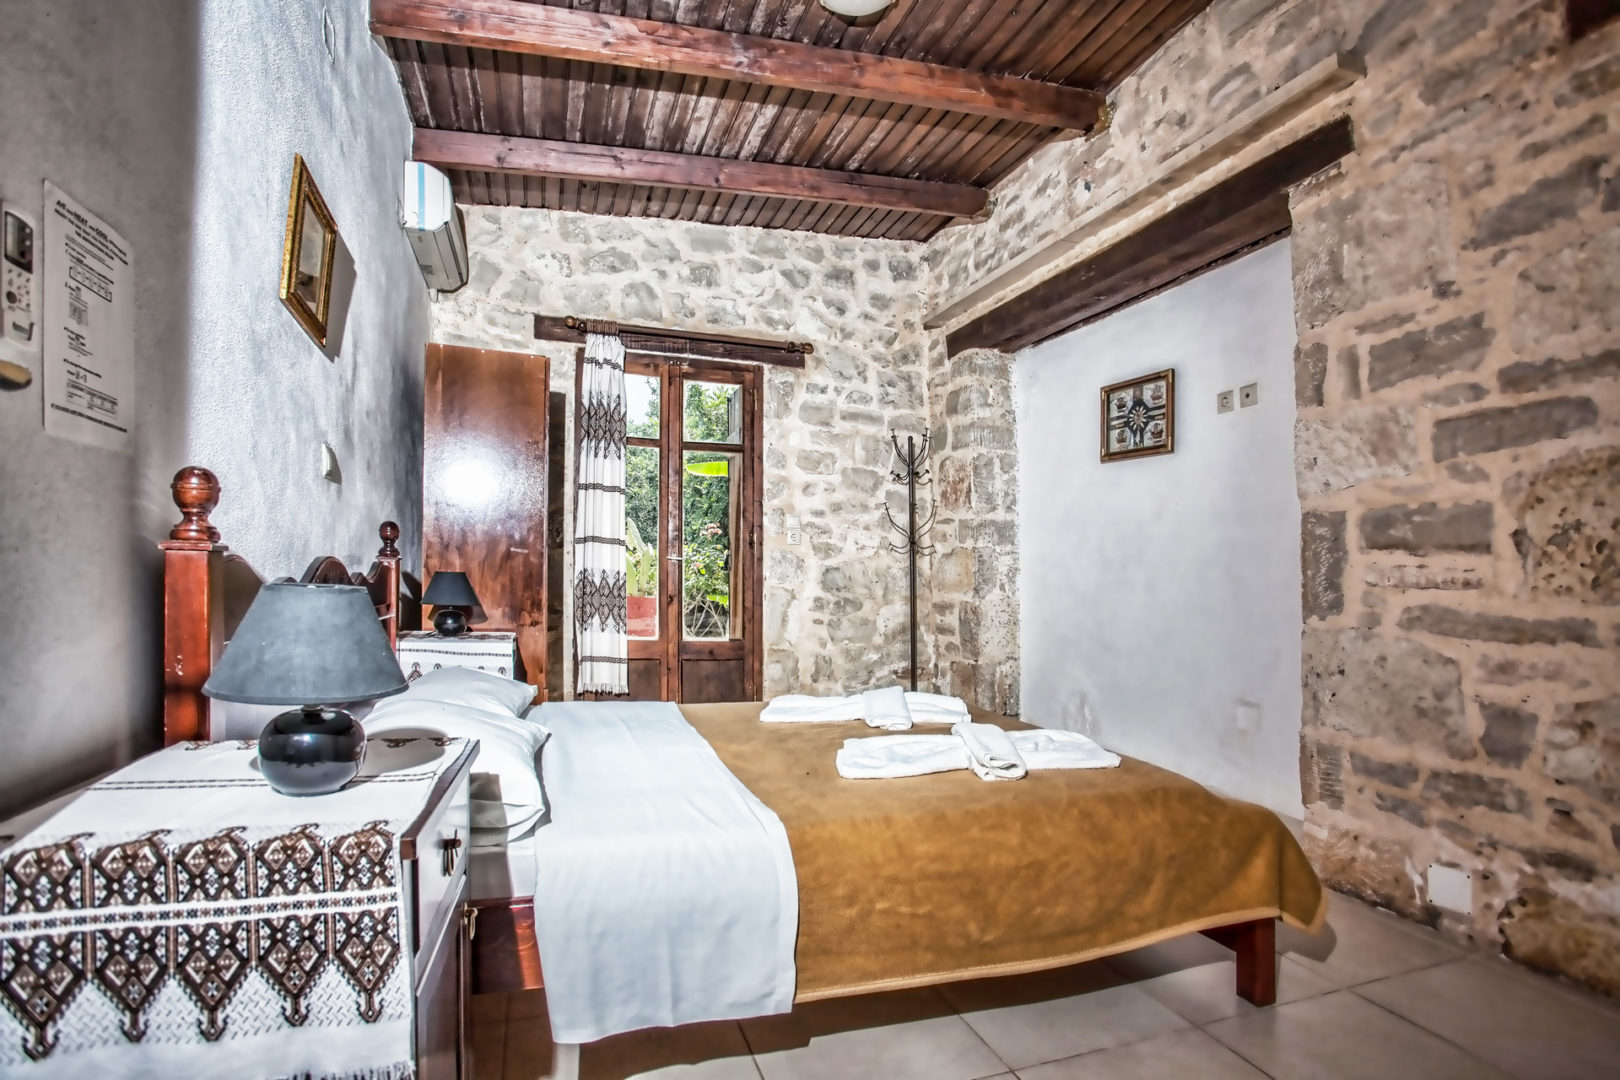 Accommodation in Bali Crete - 1-Bedroom Apartment 5 - Stone Village